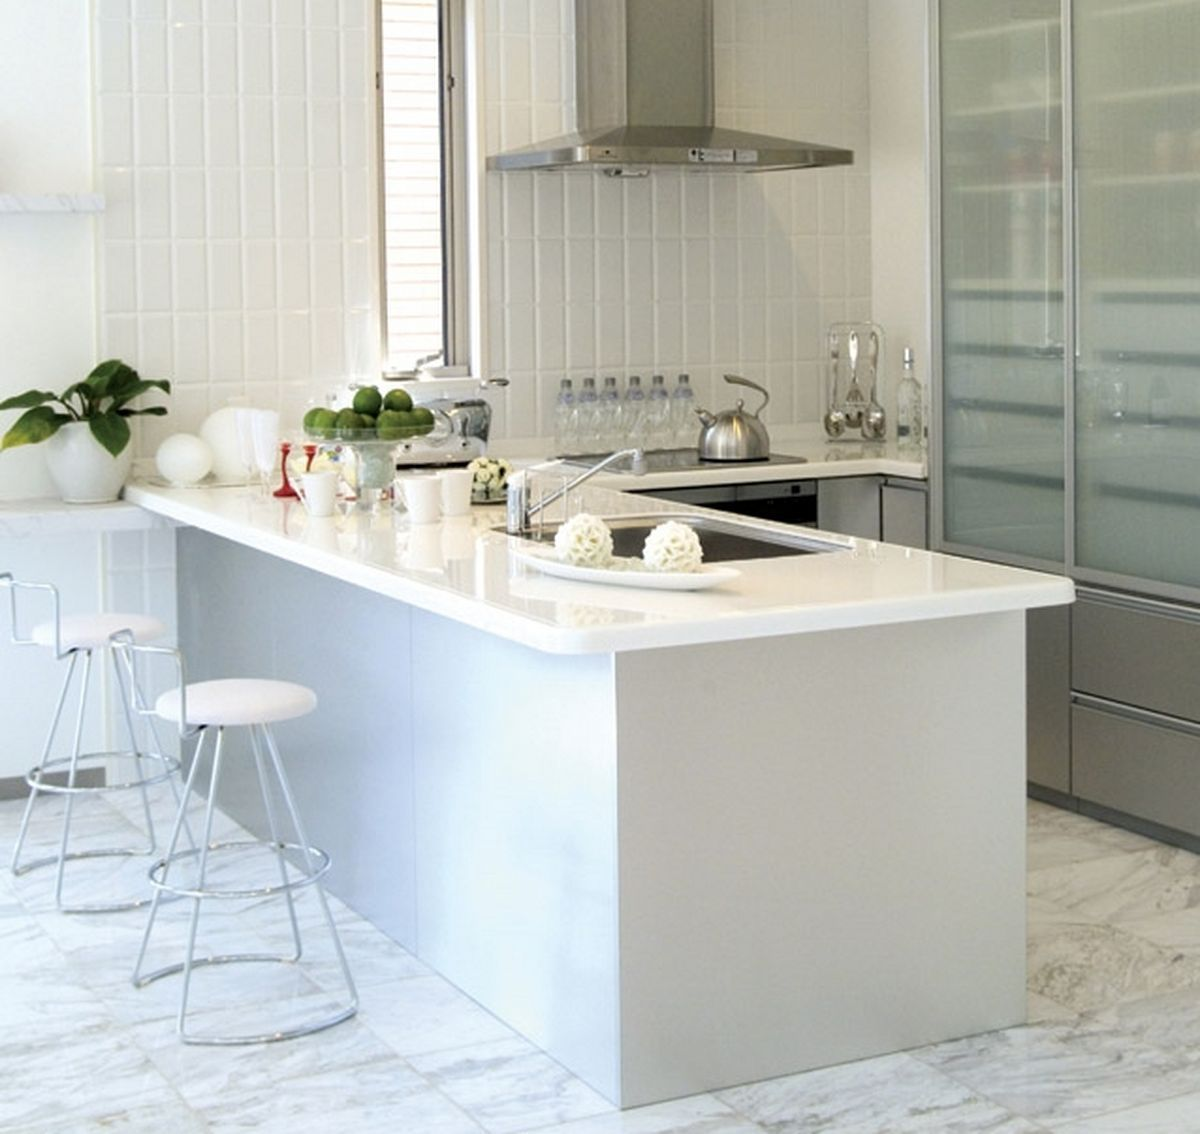 6 Tips On How To Polish And Maintain Solid Surface Countertops